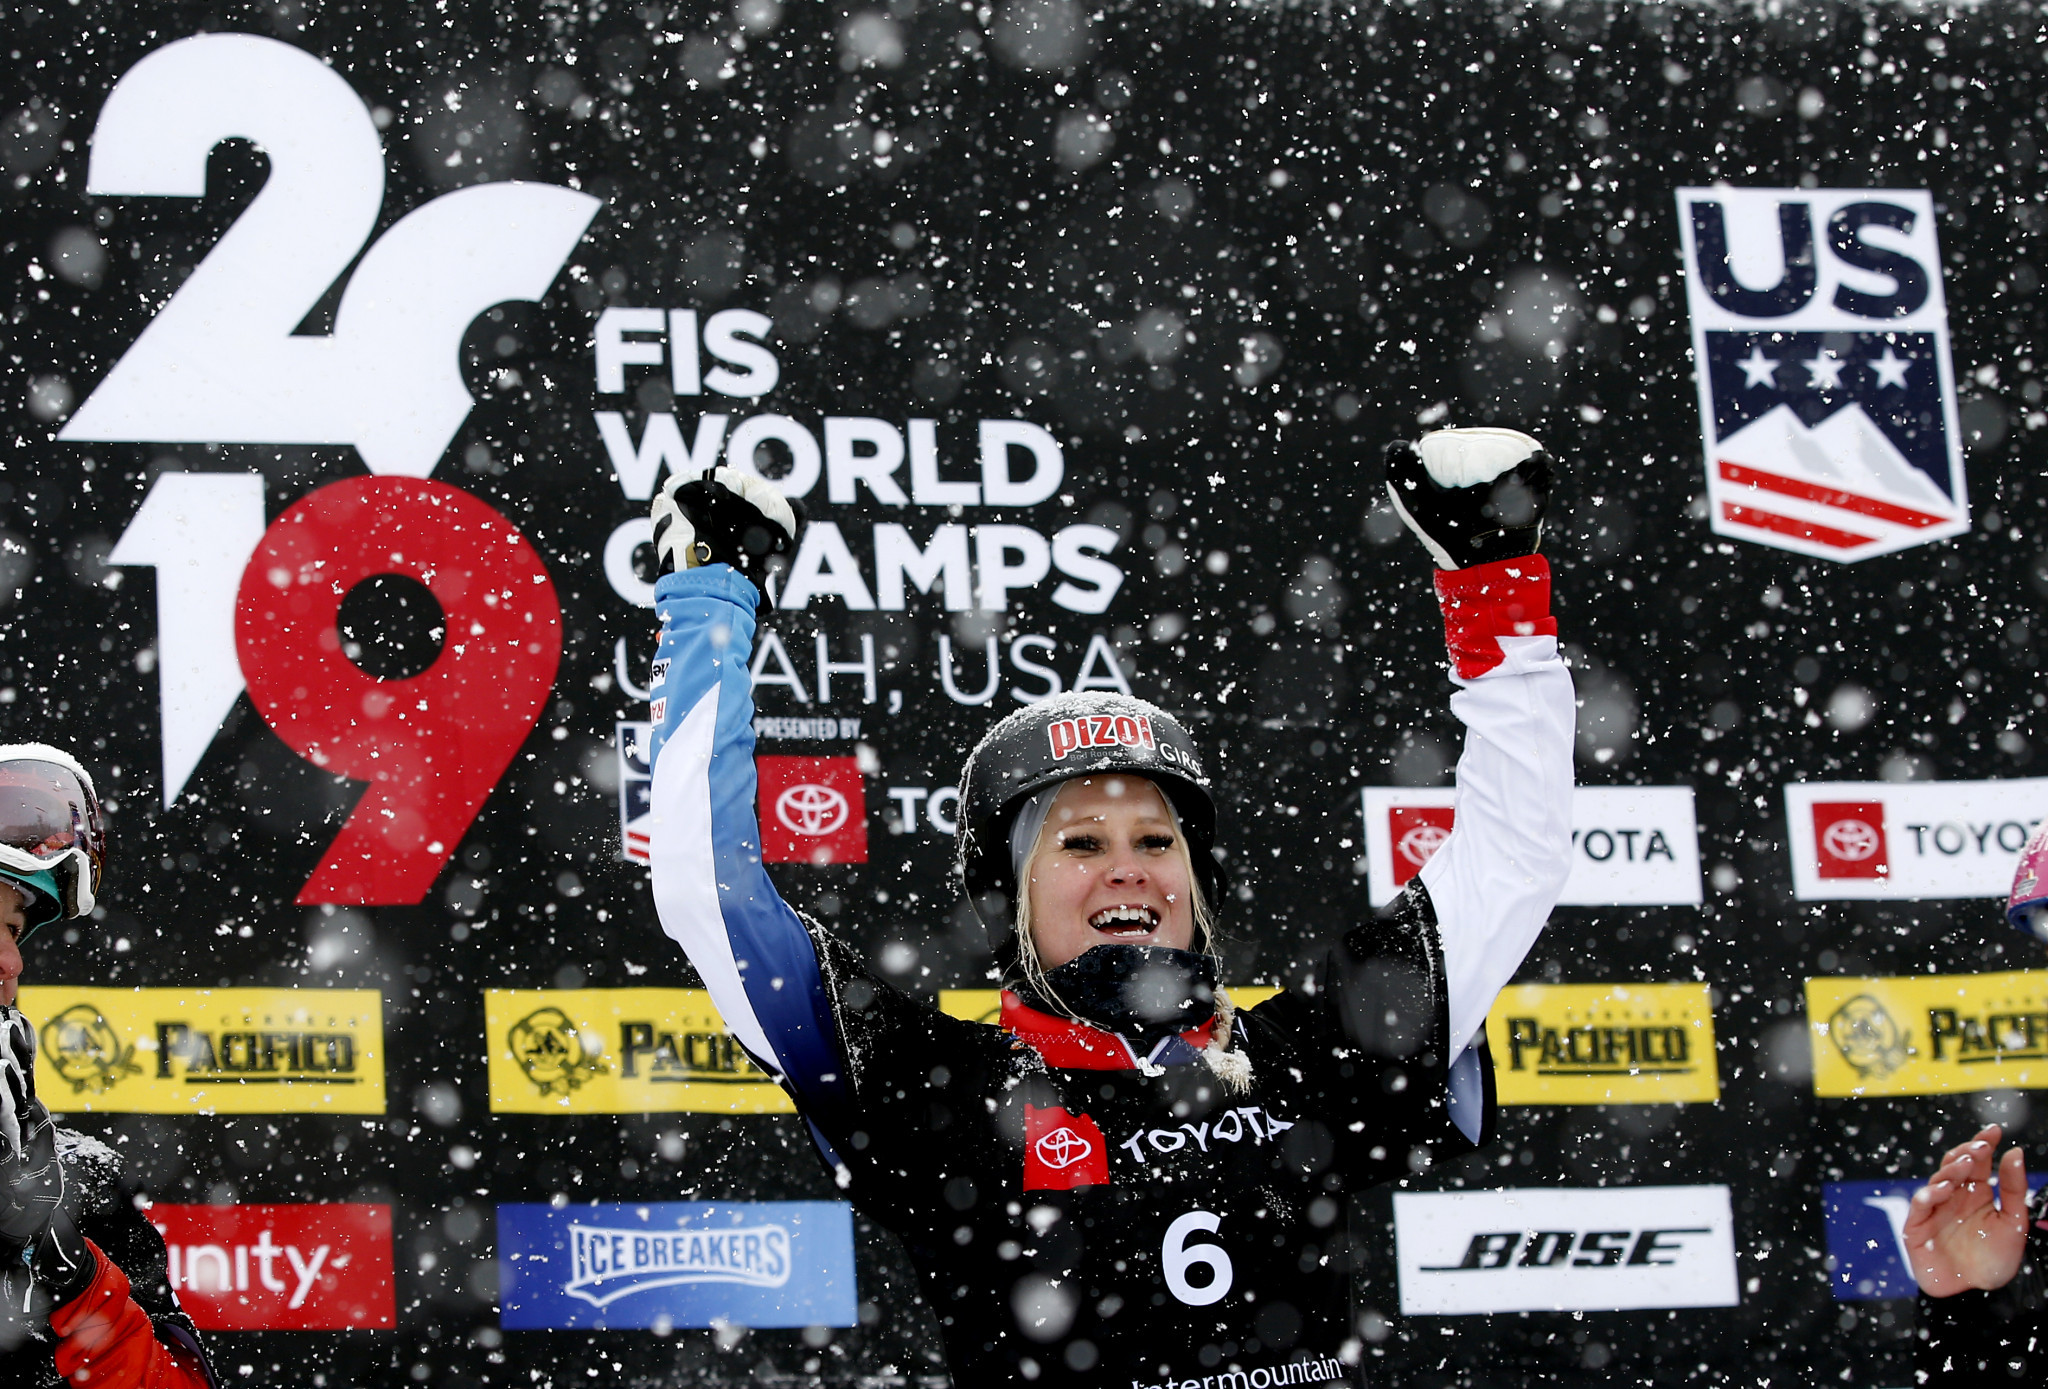 Zogg on course for season-ending crystal globe at Winterberg parallel slalom World Cup